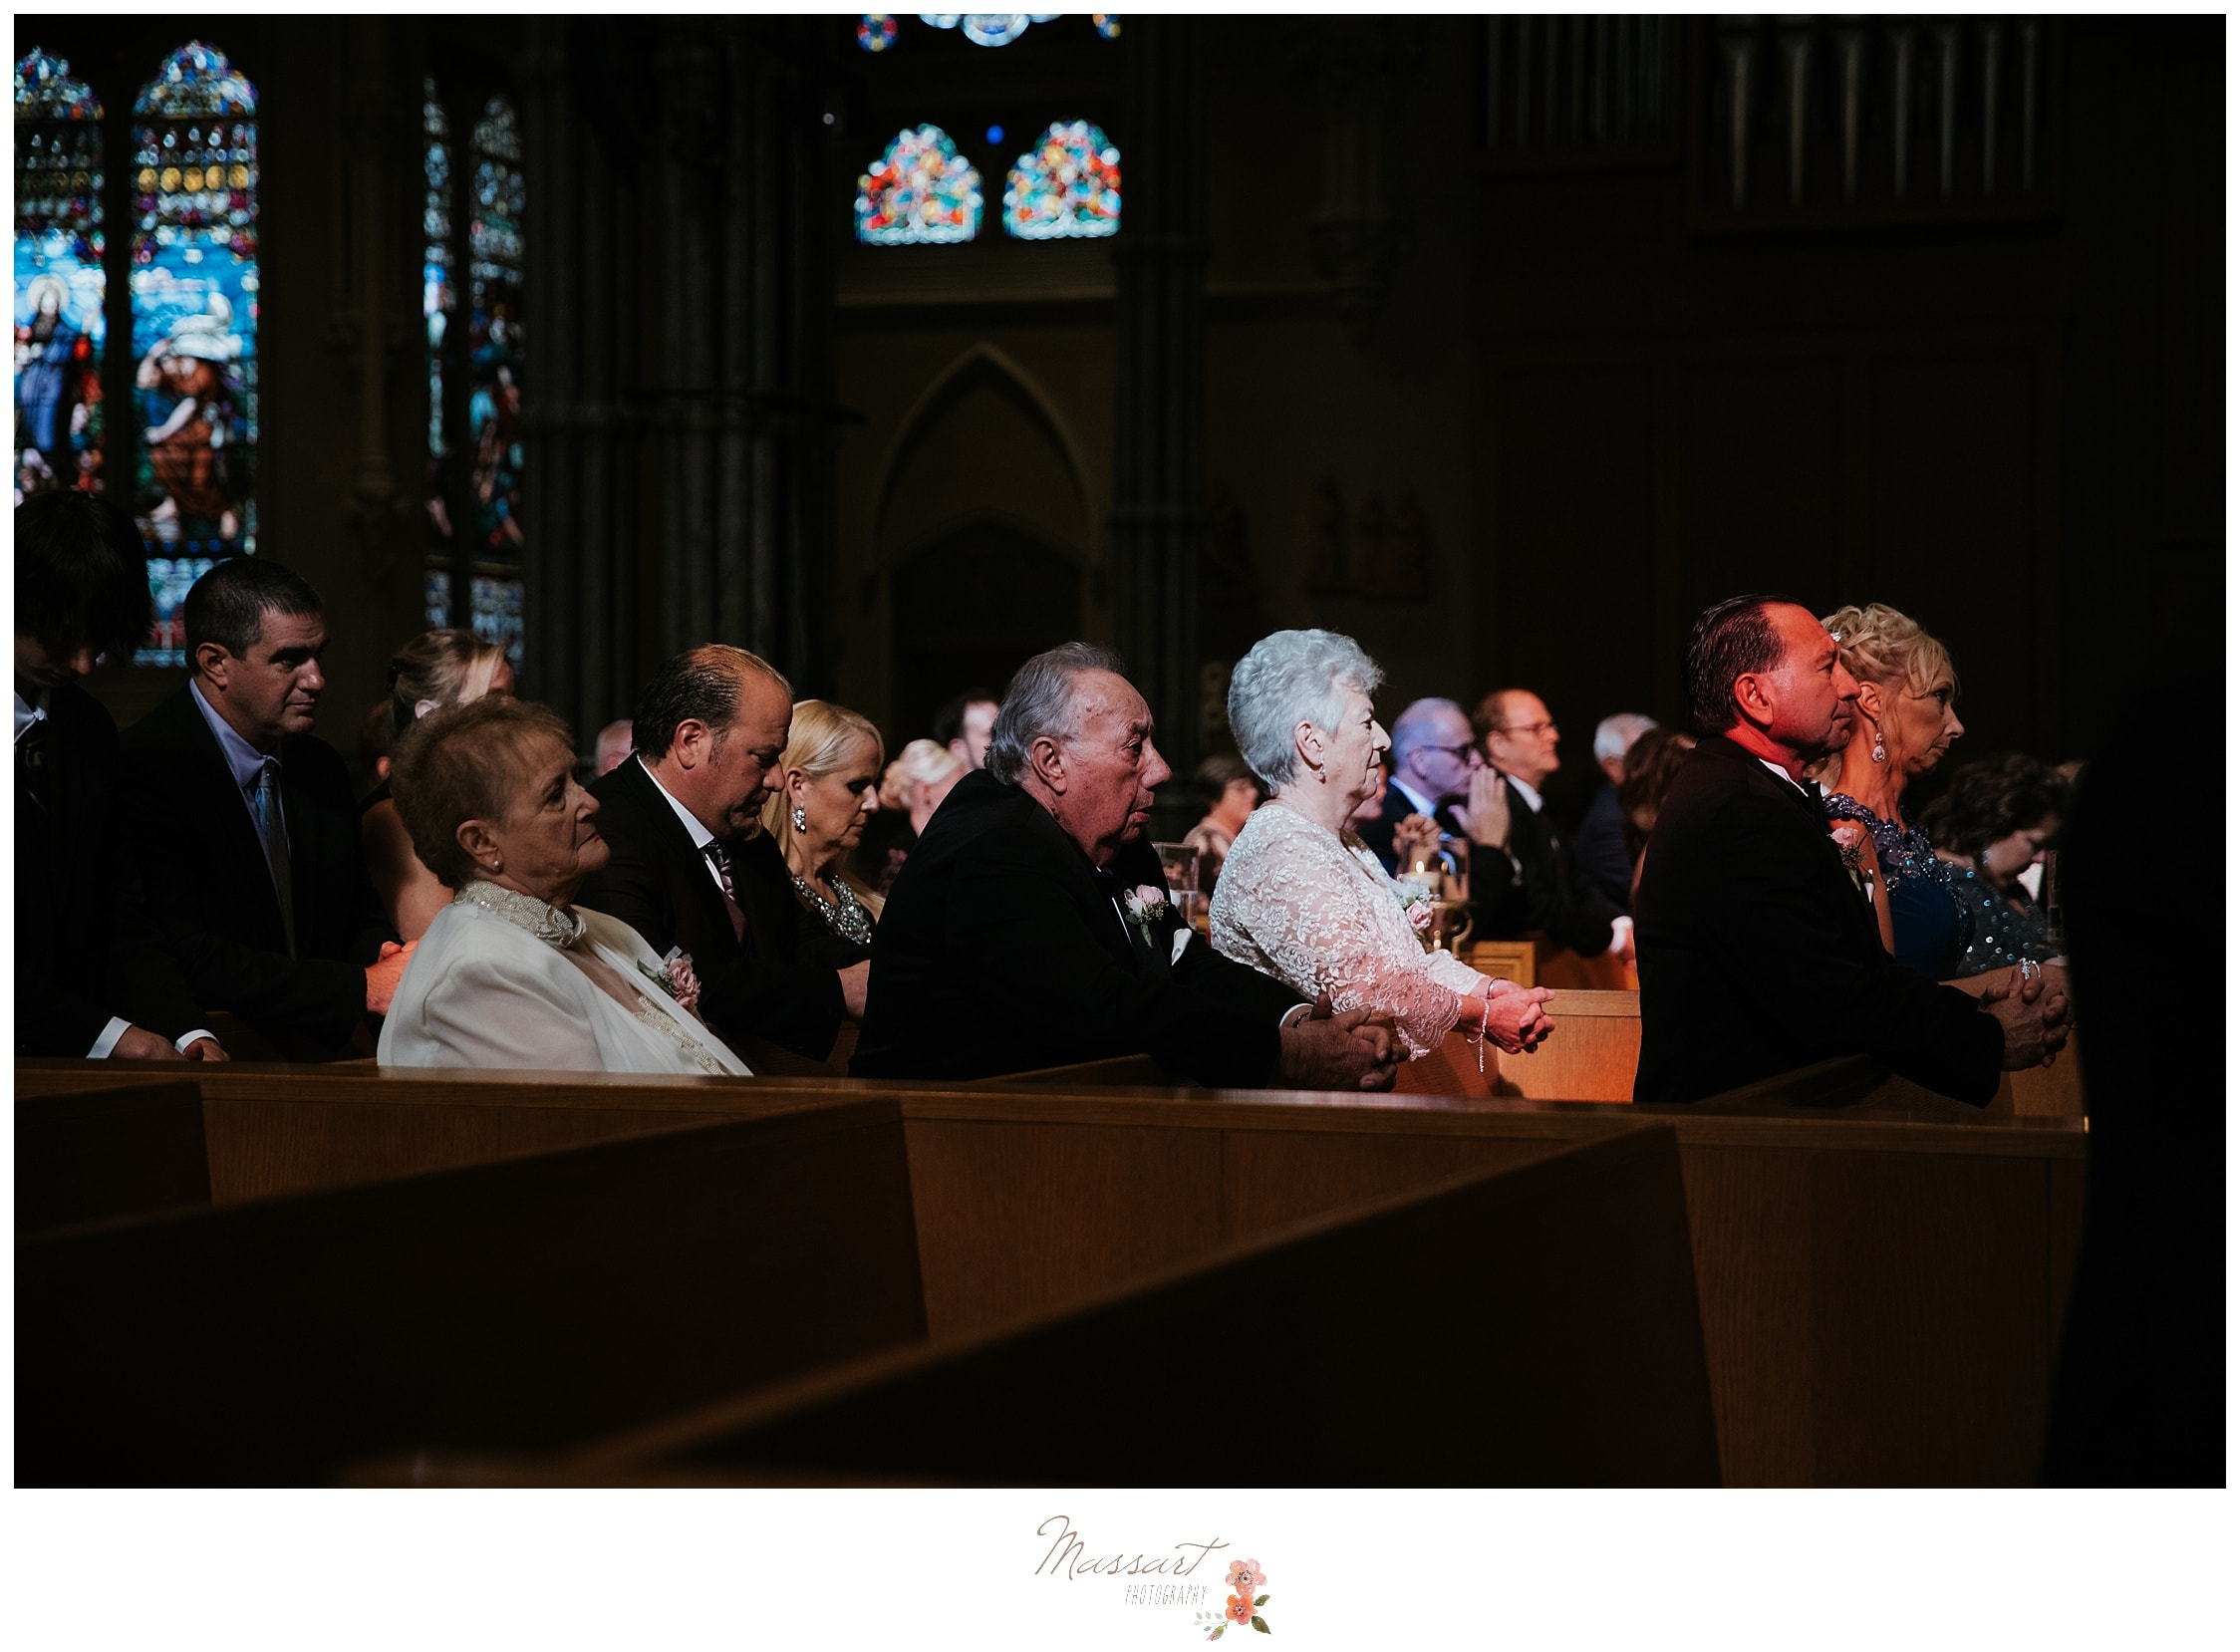 Wedding guests at the wedding ceremony photographed by Massart Photography RI